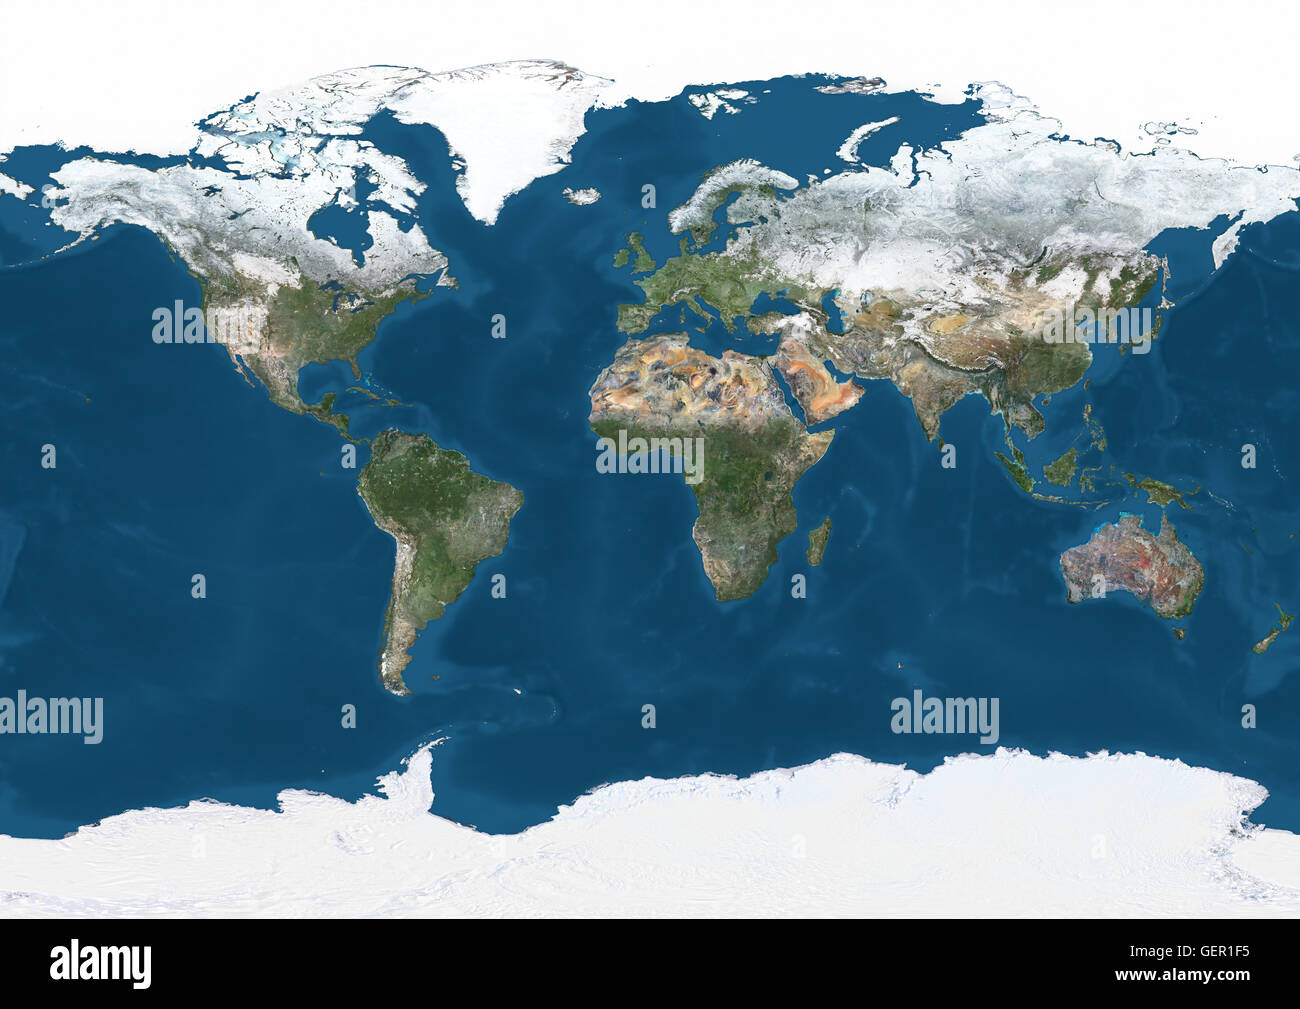 Map Of The World Satellite.World Satellite Map In Winter With Partial Snow Cover This Image